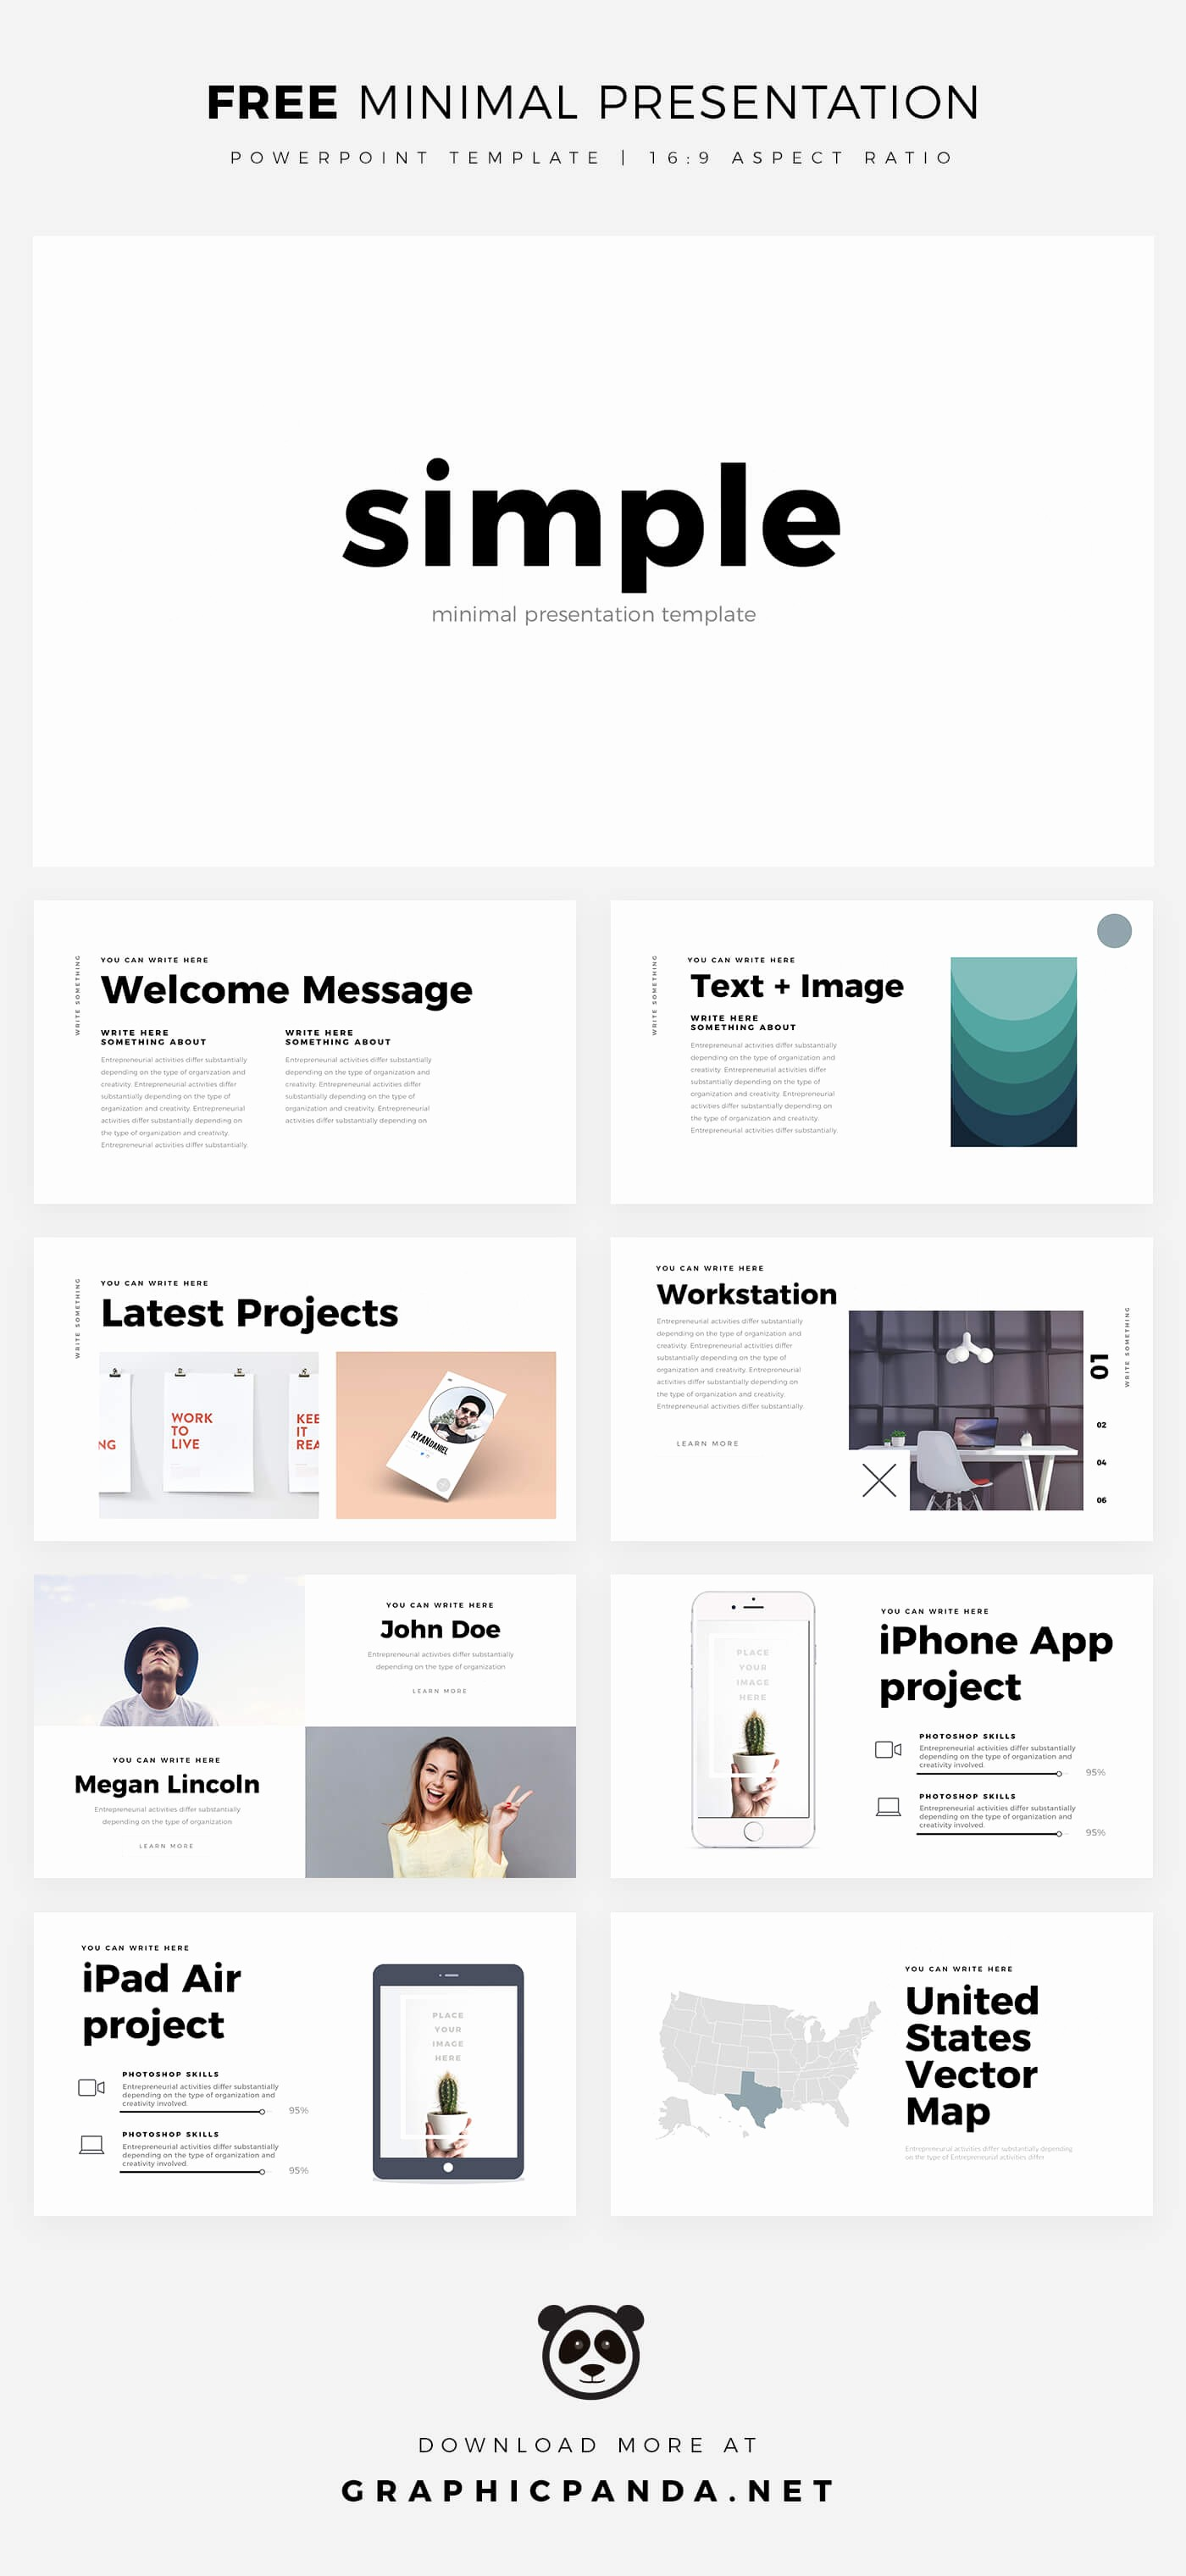 Powerpoint Slide Templates Free Download Best Of Simple Minimal Free Powerpoint Template Pptx Download